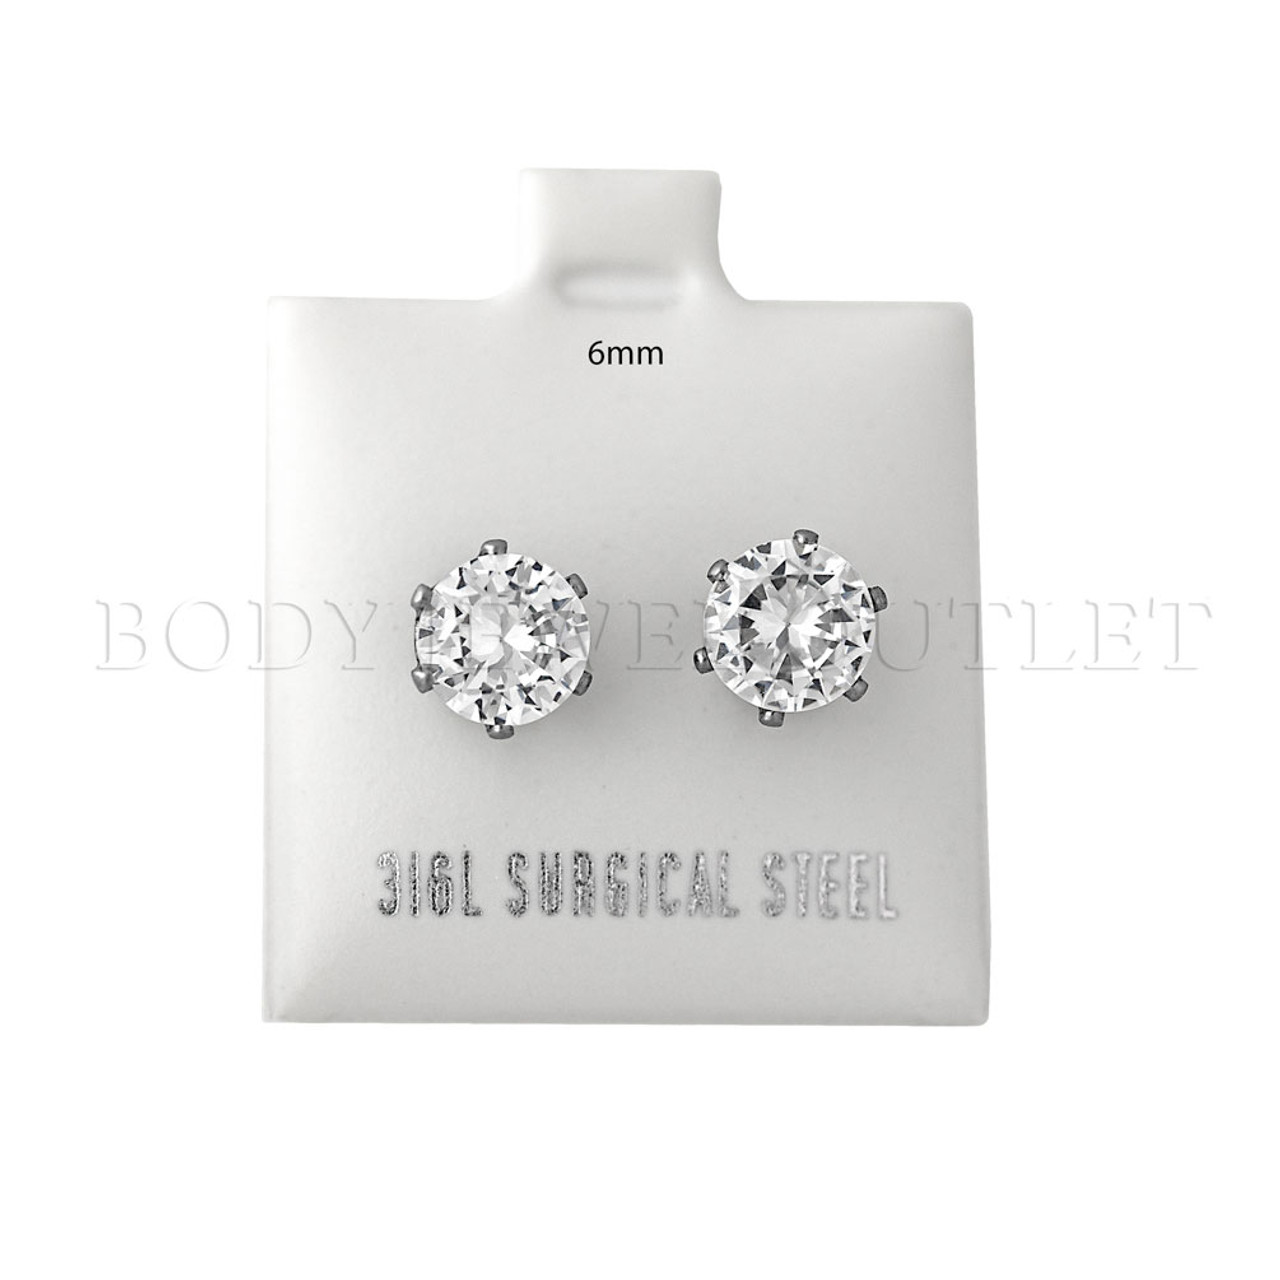 6mm Clear Round CZ  Stud - 316L Stainless Steel Earring - Pair (2 Pieces) 6mm Stud Earrings with Clear Round CZ - Steel | BodyJewelOutlet